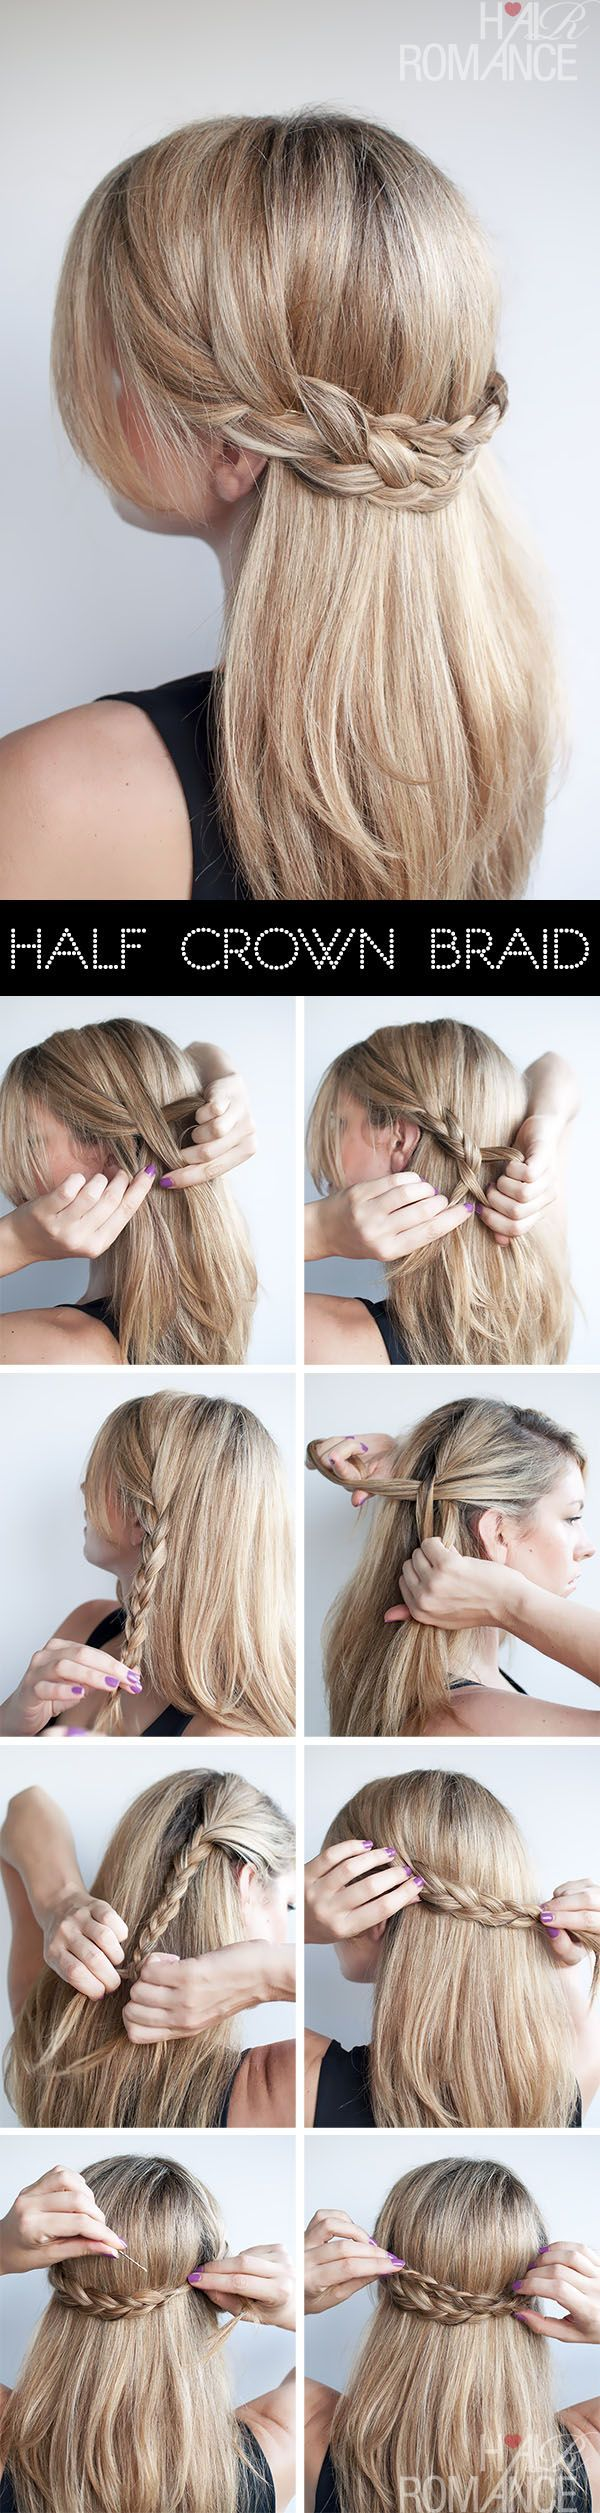 We've found braid tutorials that anyone can do - no matter how unexperienced...